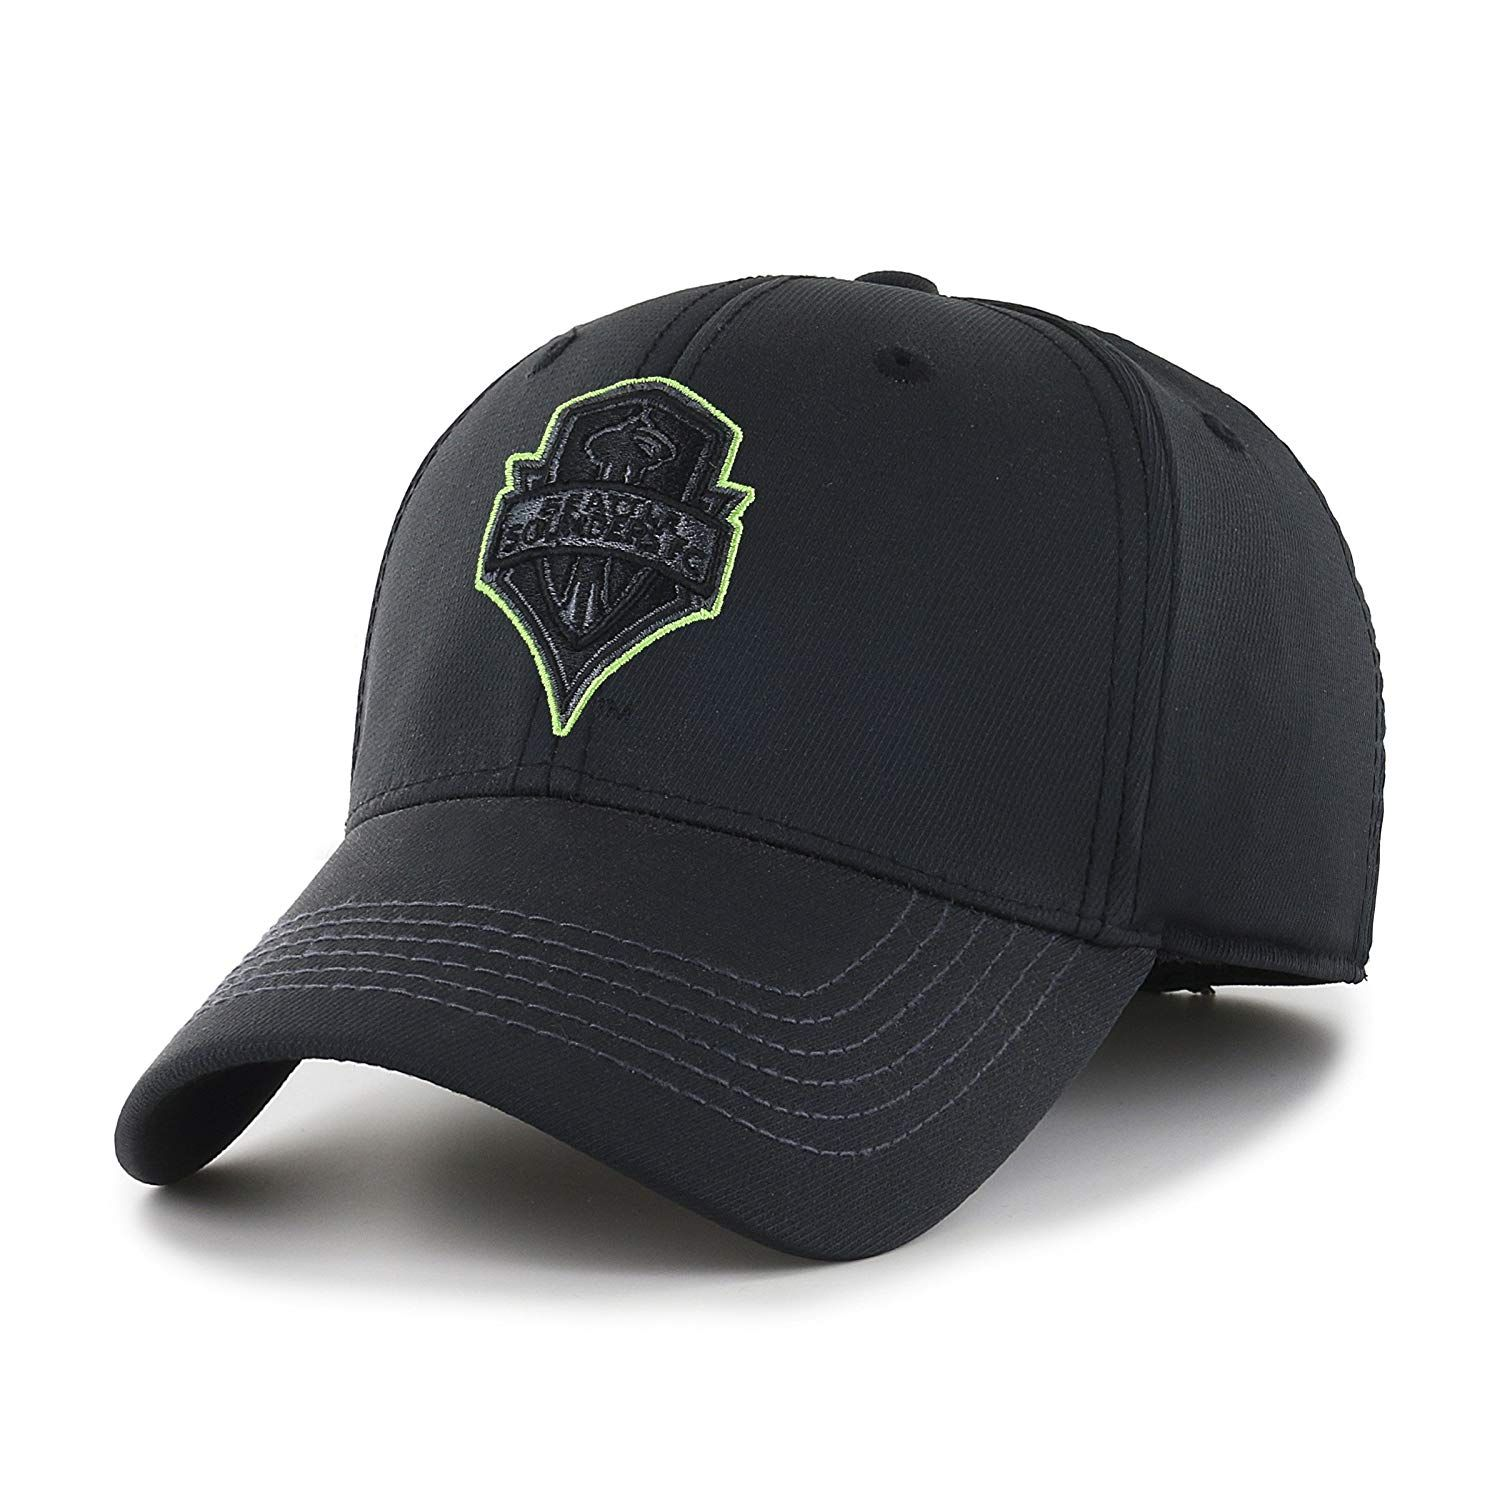 wholesale dealer ac0b8 7aff3 ... official ots mls seattle sounders fc wilder center stretch fit hat  28.00 e0005 c7900